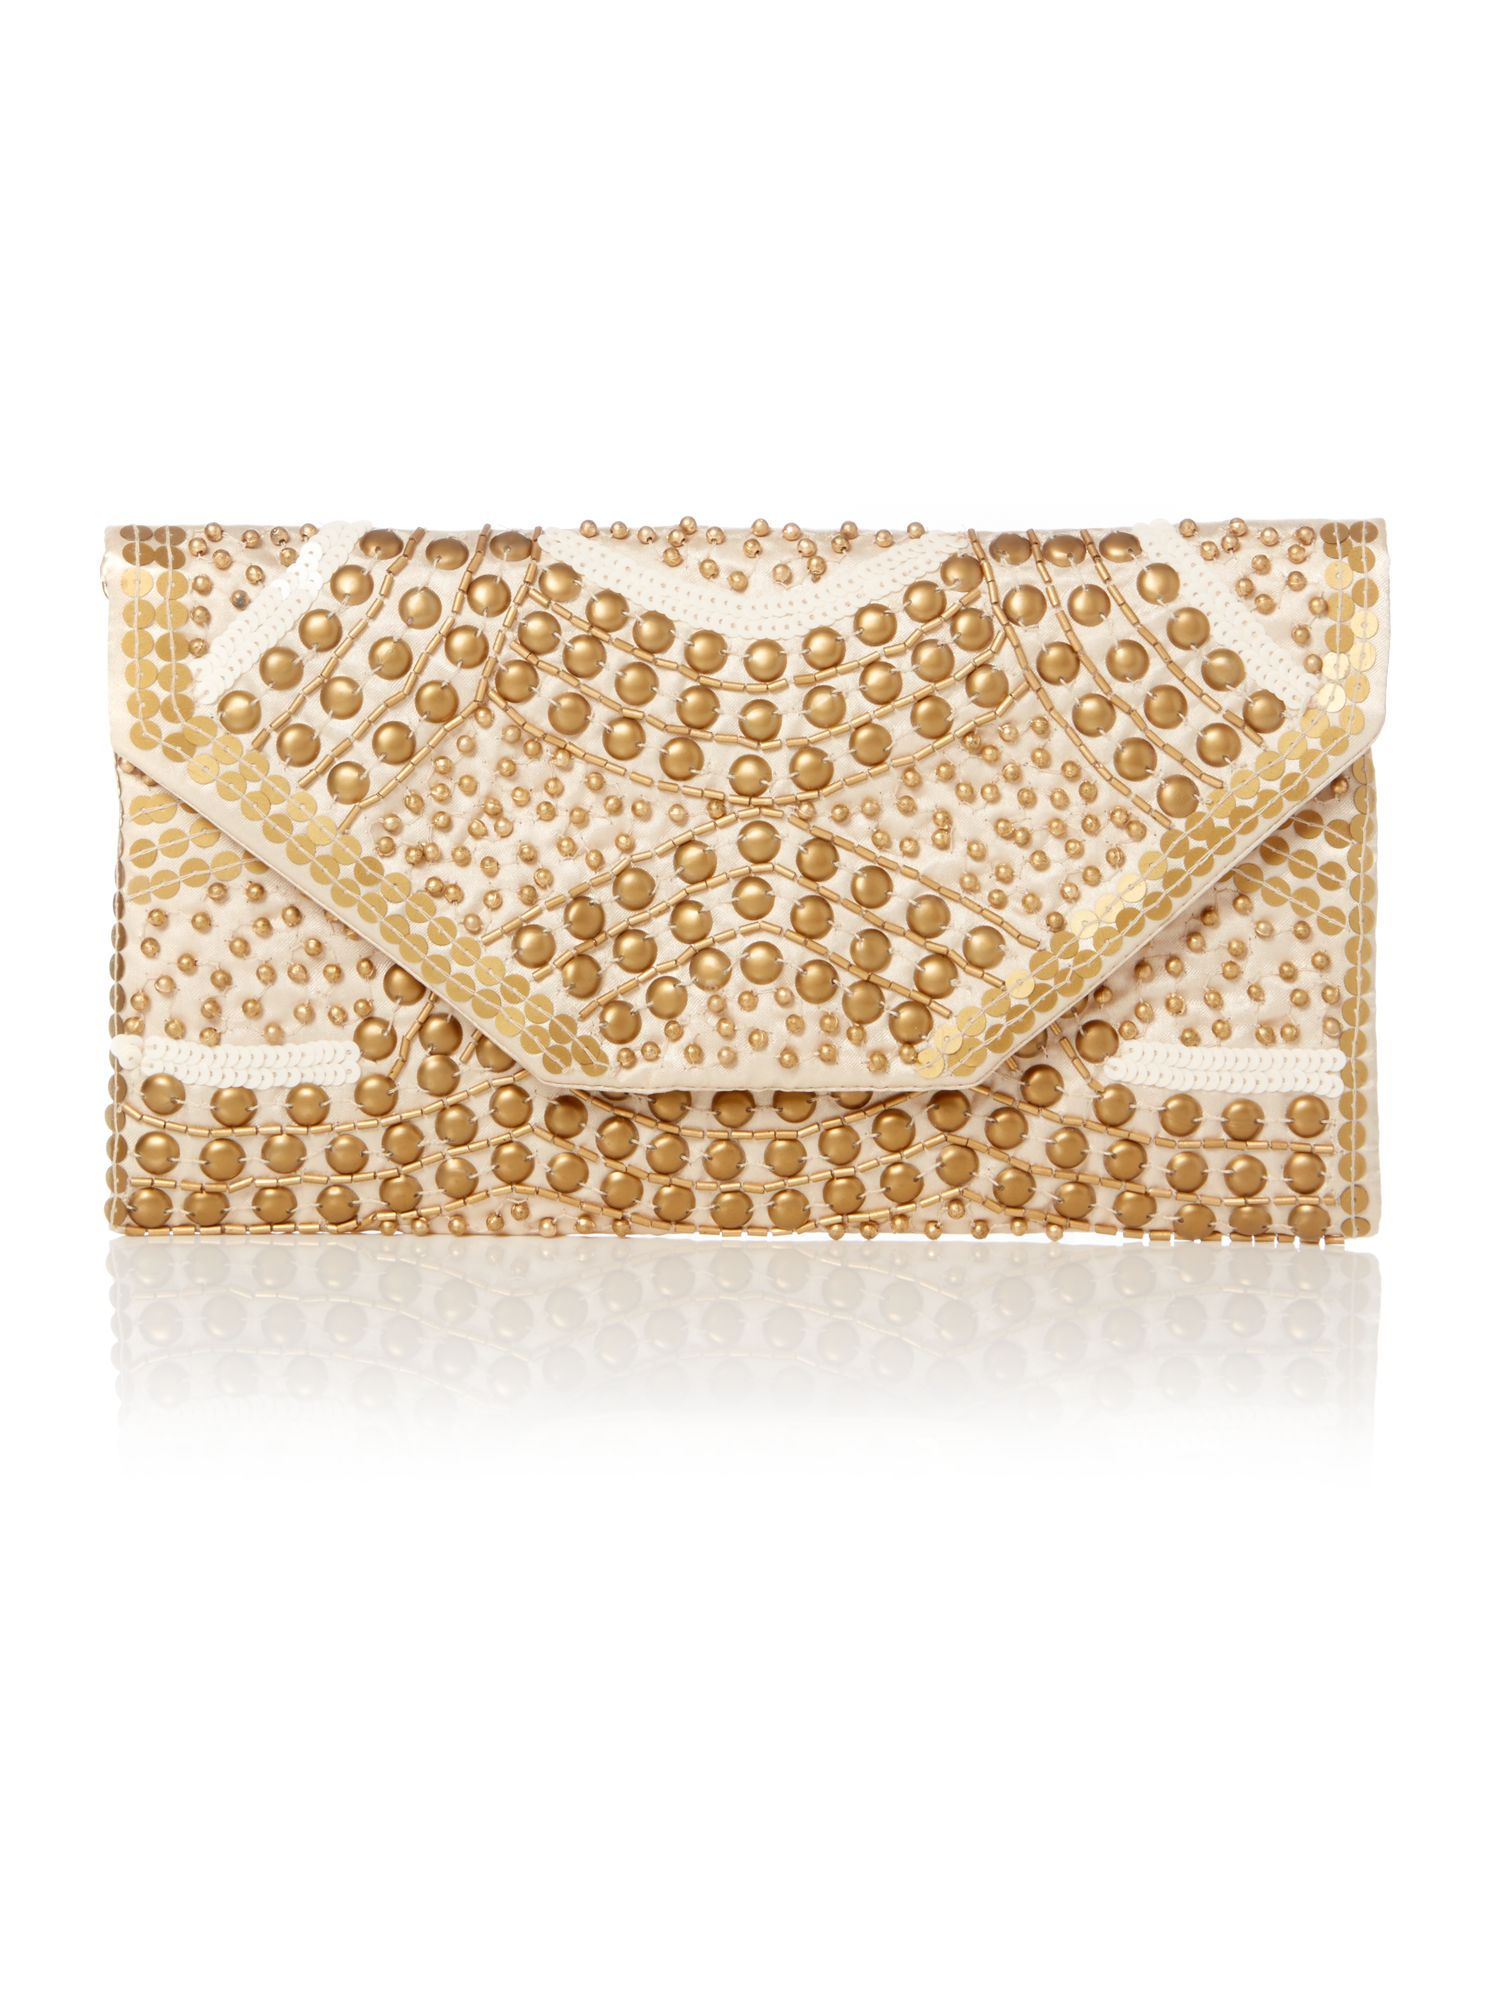 Jade stud clutch bag